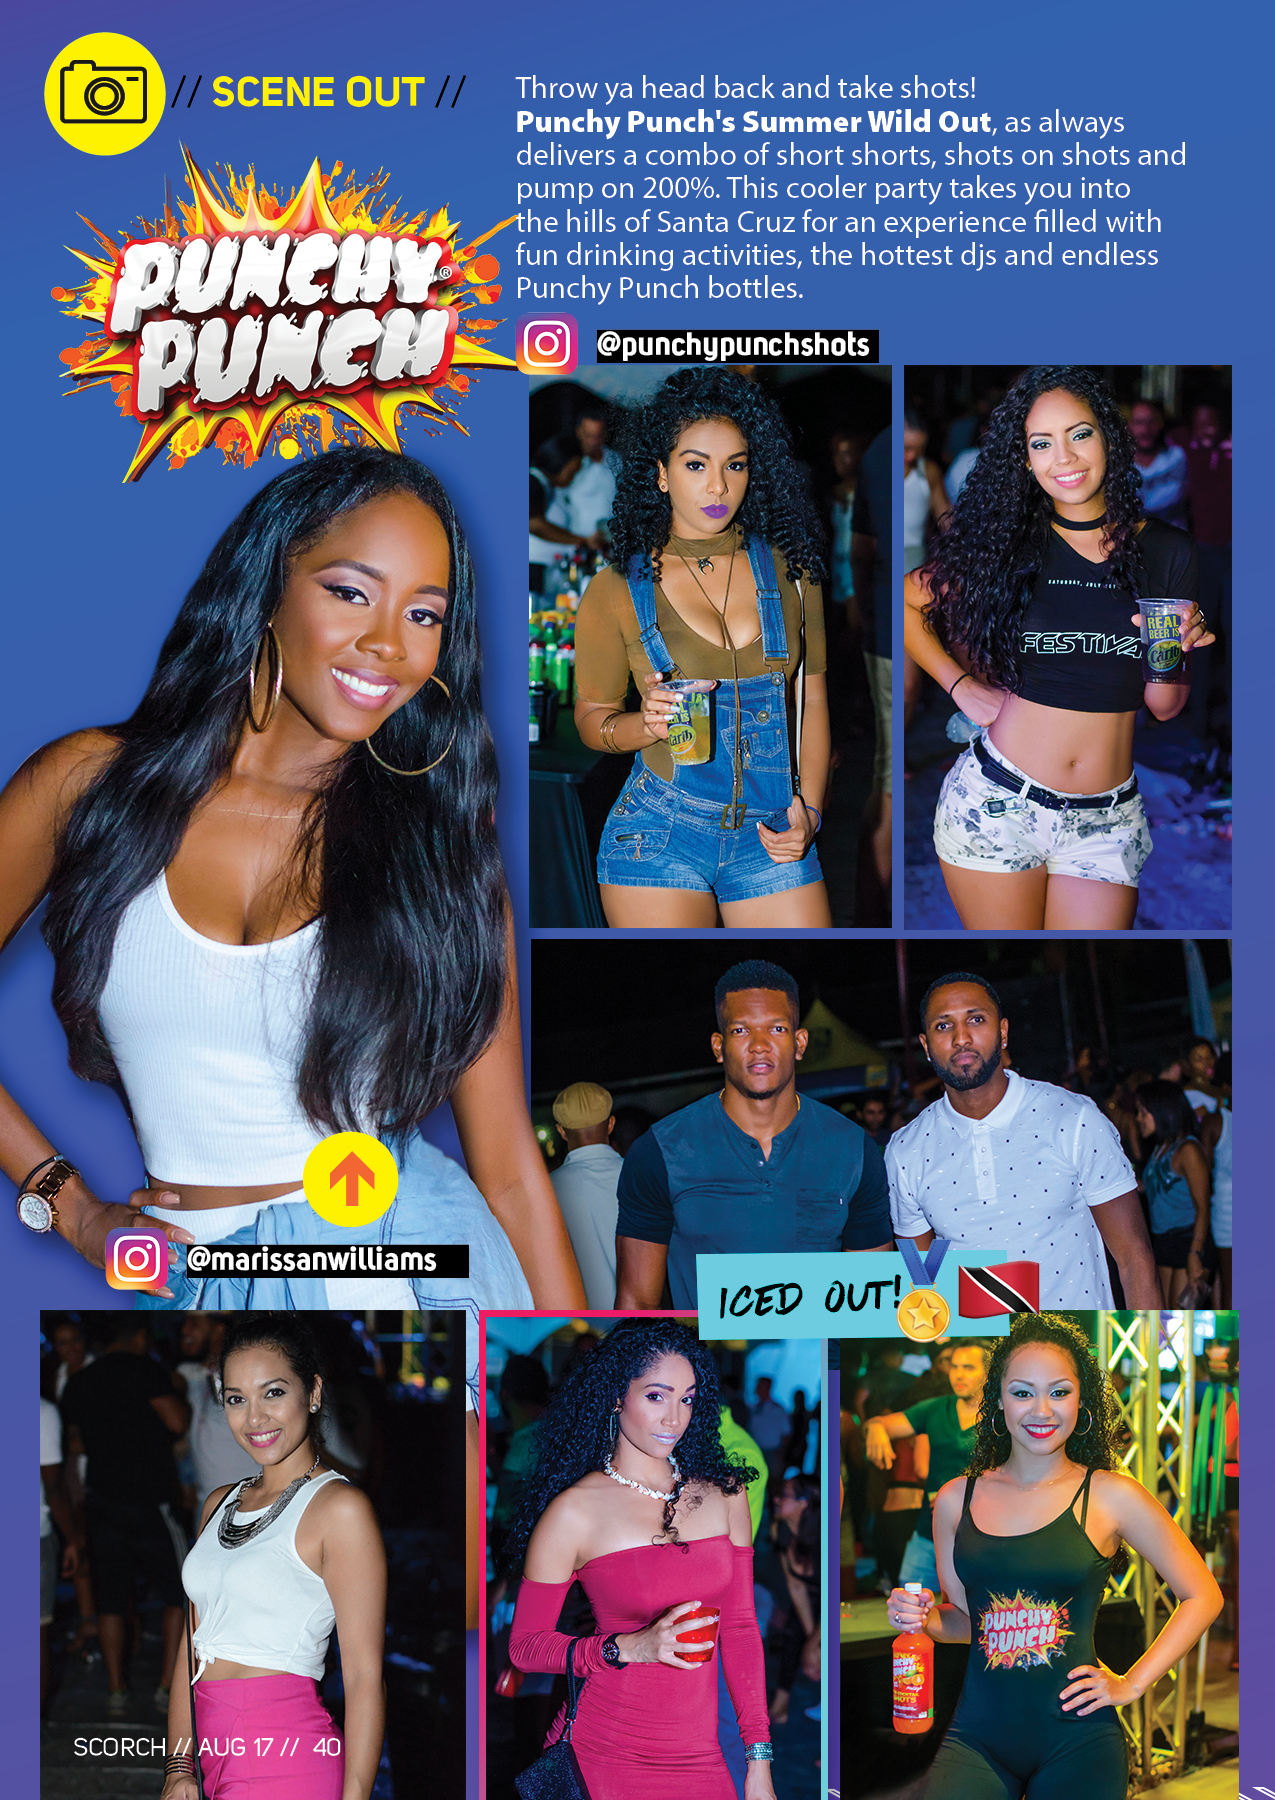 SCORCH ISSUE 49 - Pages40.jpg